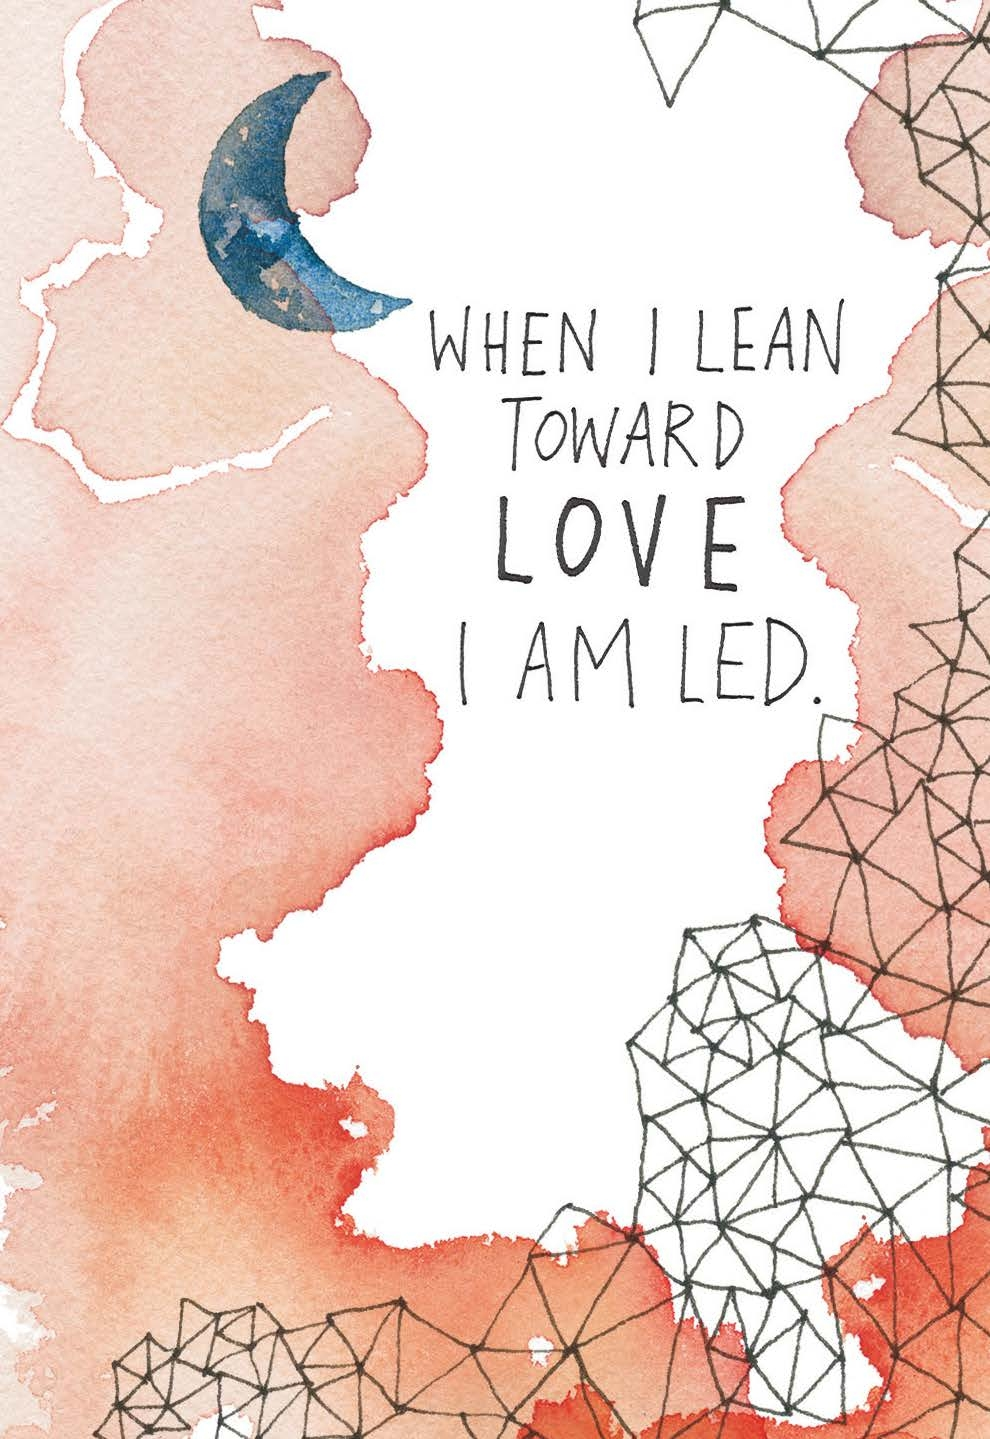 lean toward love gabby bernstein card deck